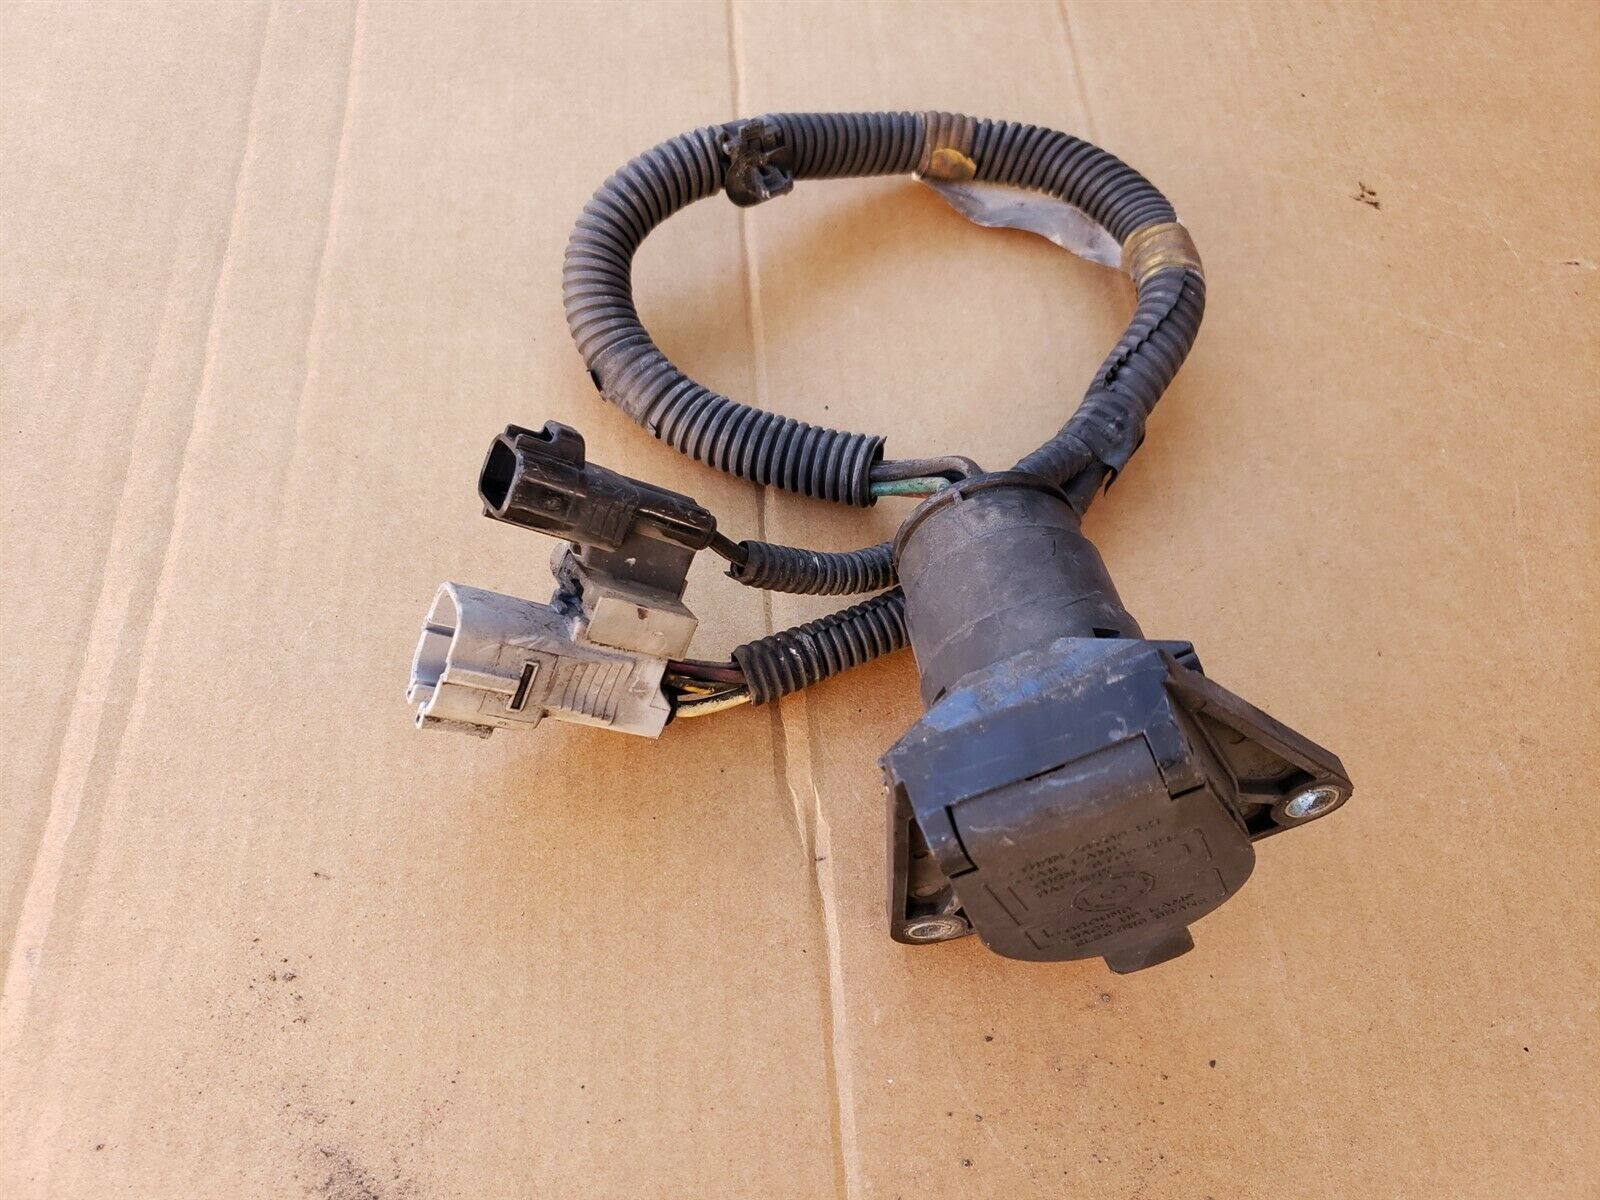 04-07 Toyota Sequoia Wire Frame Tow Trailer Hitch Wiring Harness 7-pin